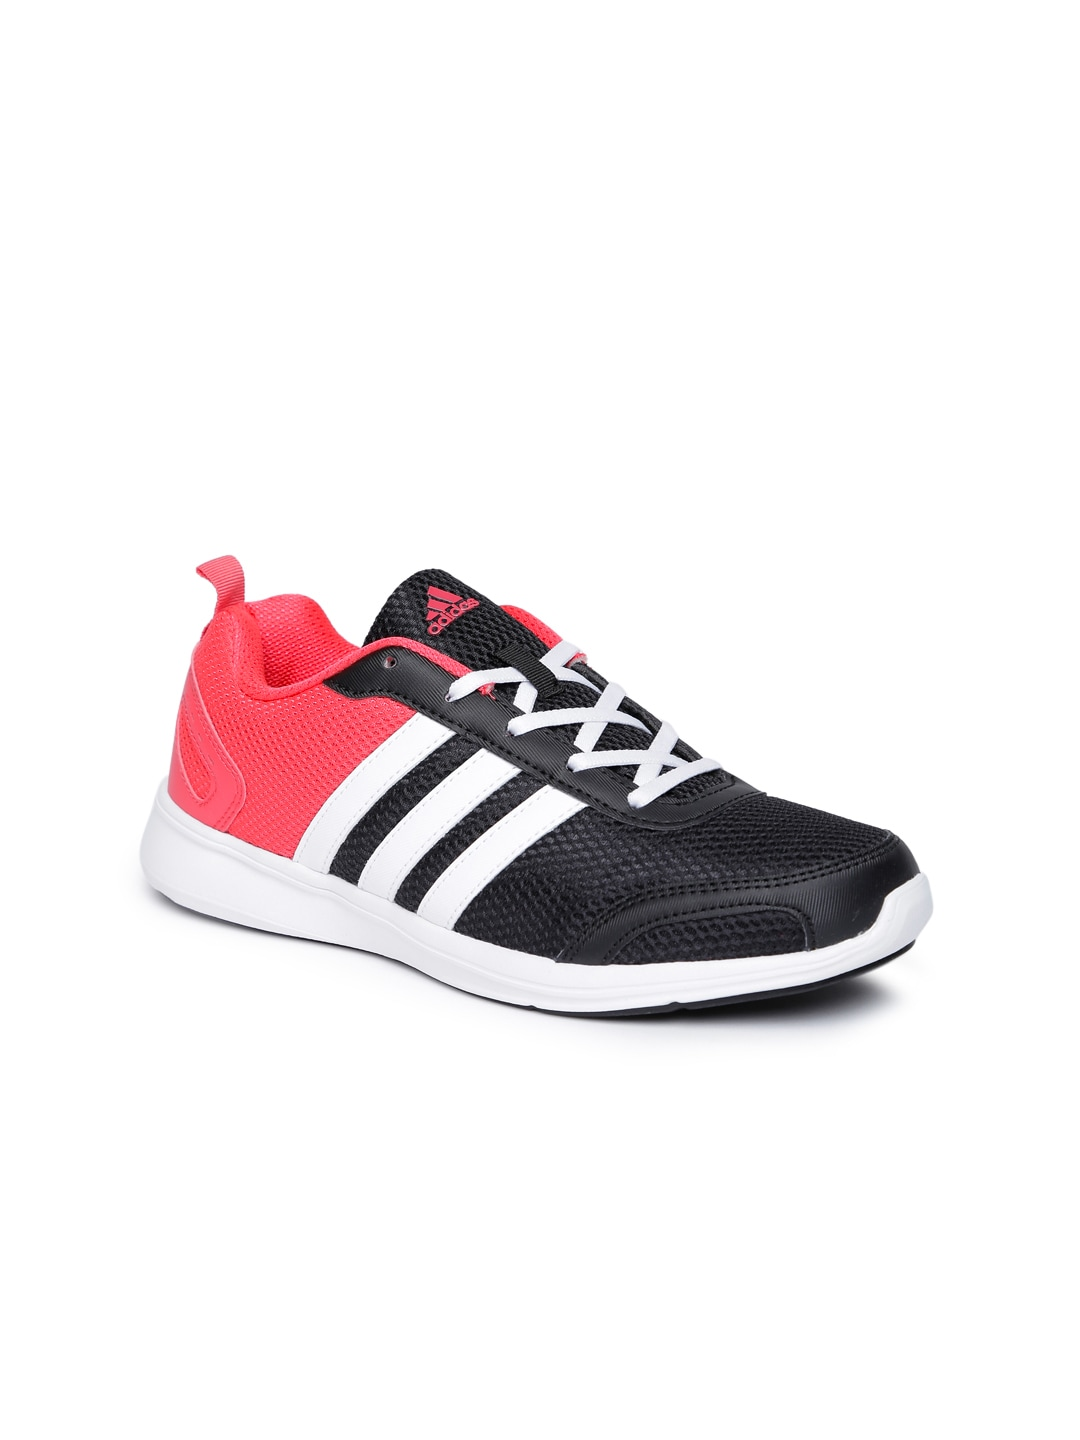 Adidas Shoes For Girls Maroon